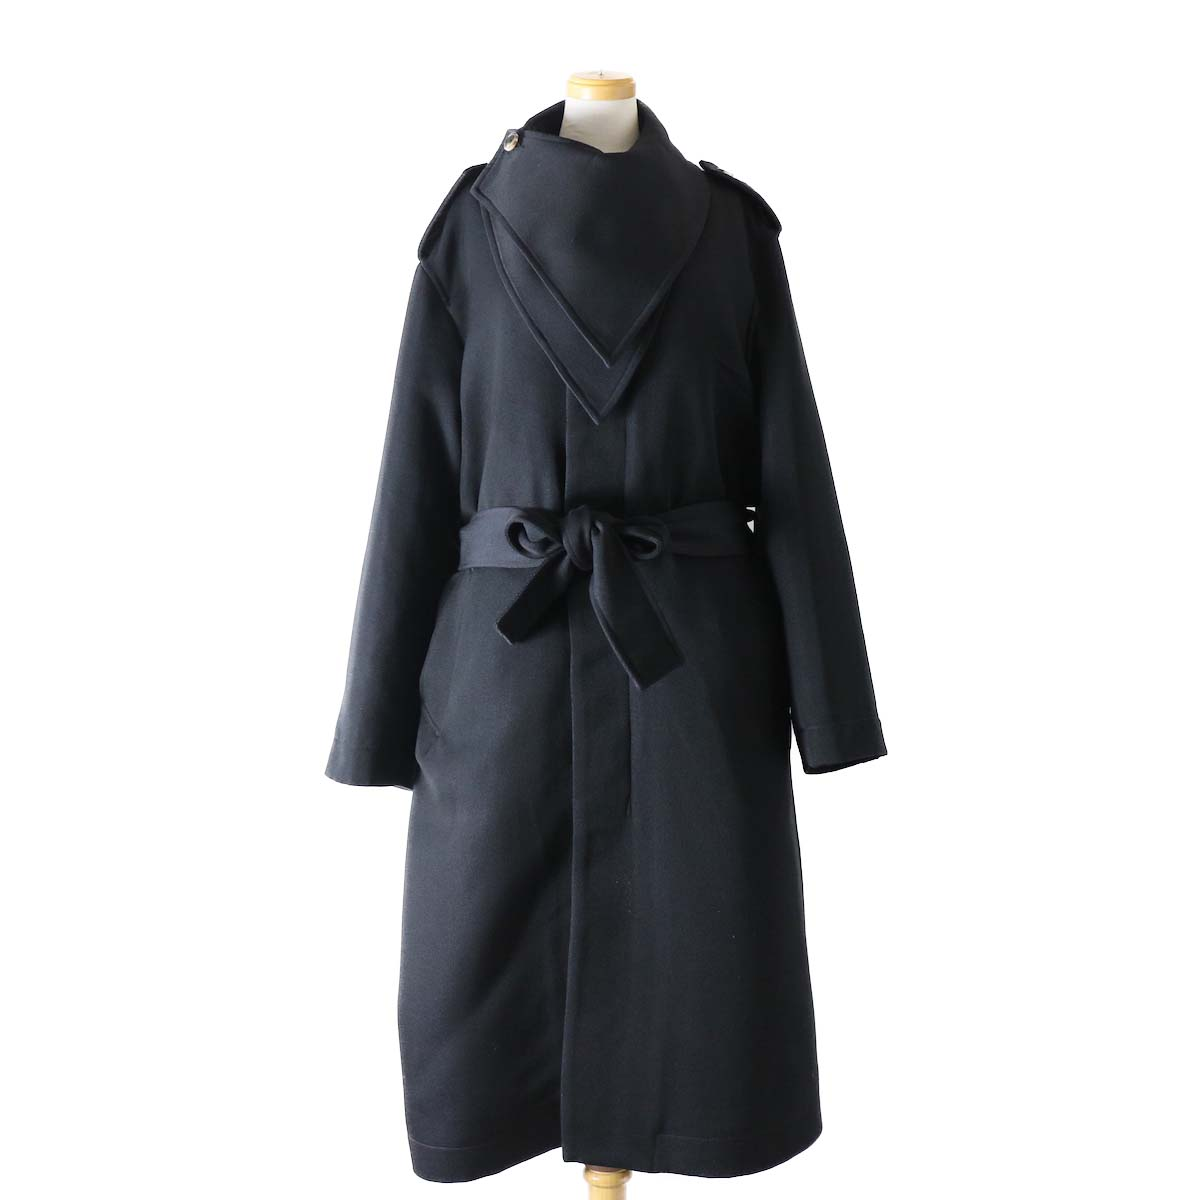 FUMIKA UCHIDA / SCARF COLLAR FLY FRONT COAT_lined with boa-NAVY